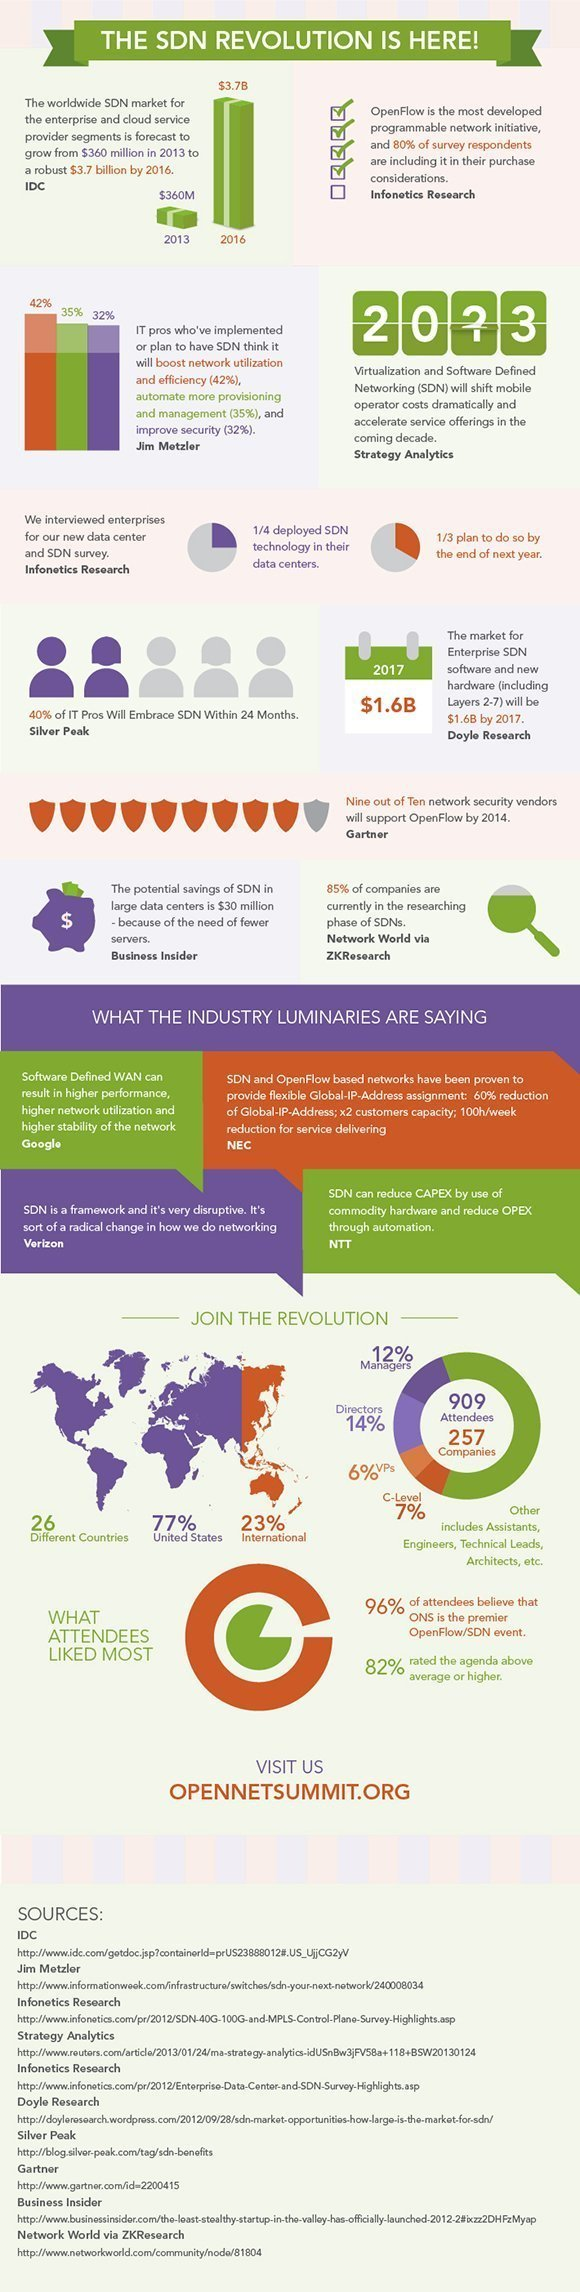 Infographic: The growth of the SDN market